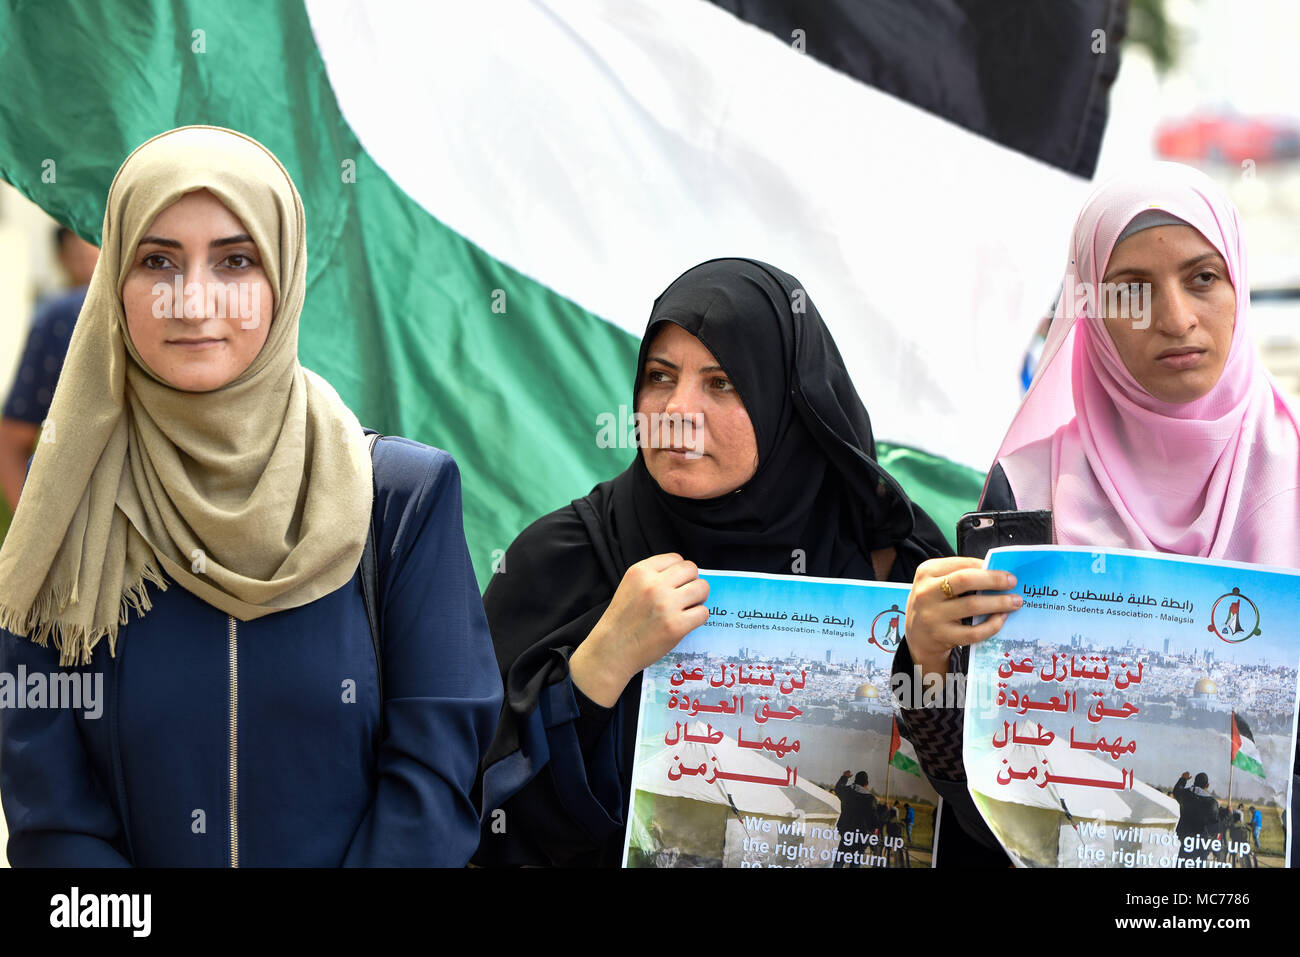 Kuala Lumpur, Malaysia. 13th Apr, 2018. Palestinian protesters march to the US embassy in Kuala Lumpur, Malaysia on April 13, 2018 during a rally of Palestinian Land Day. The protests are being held around the world. Credit: Chris JUNG/Alamy Live News - Stock Image